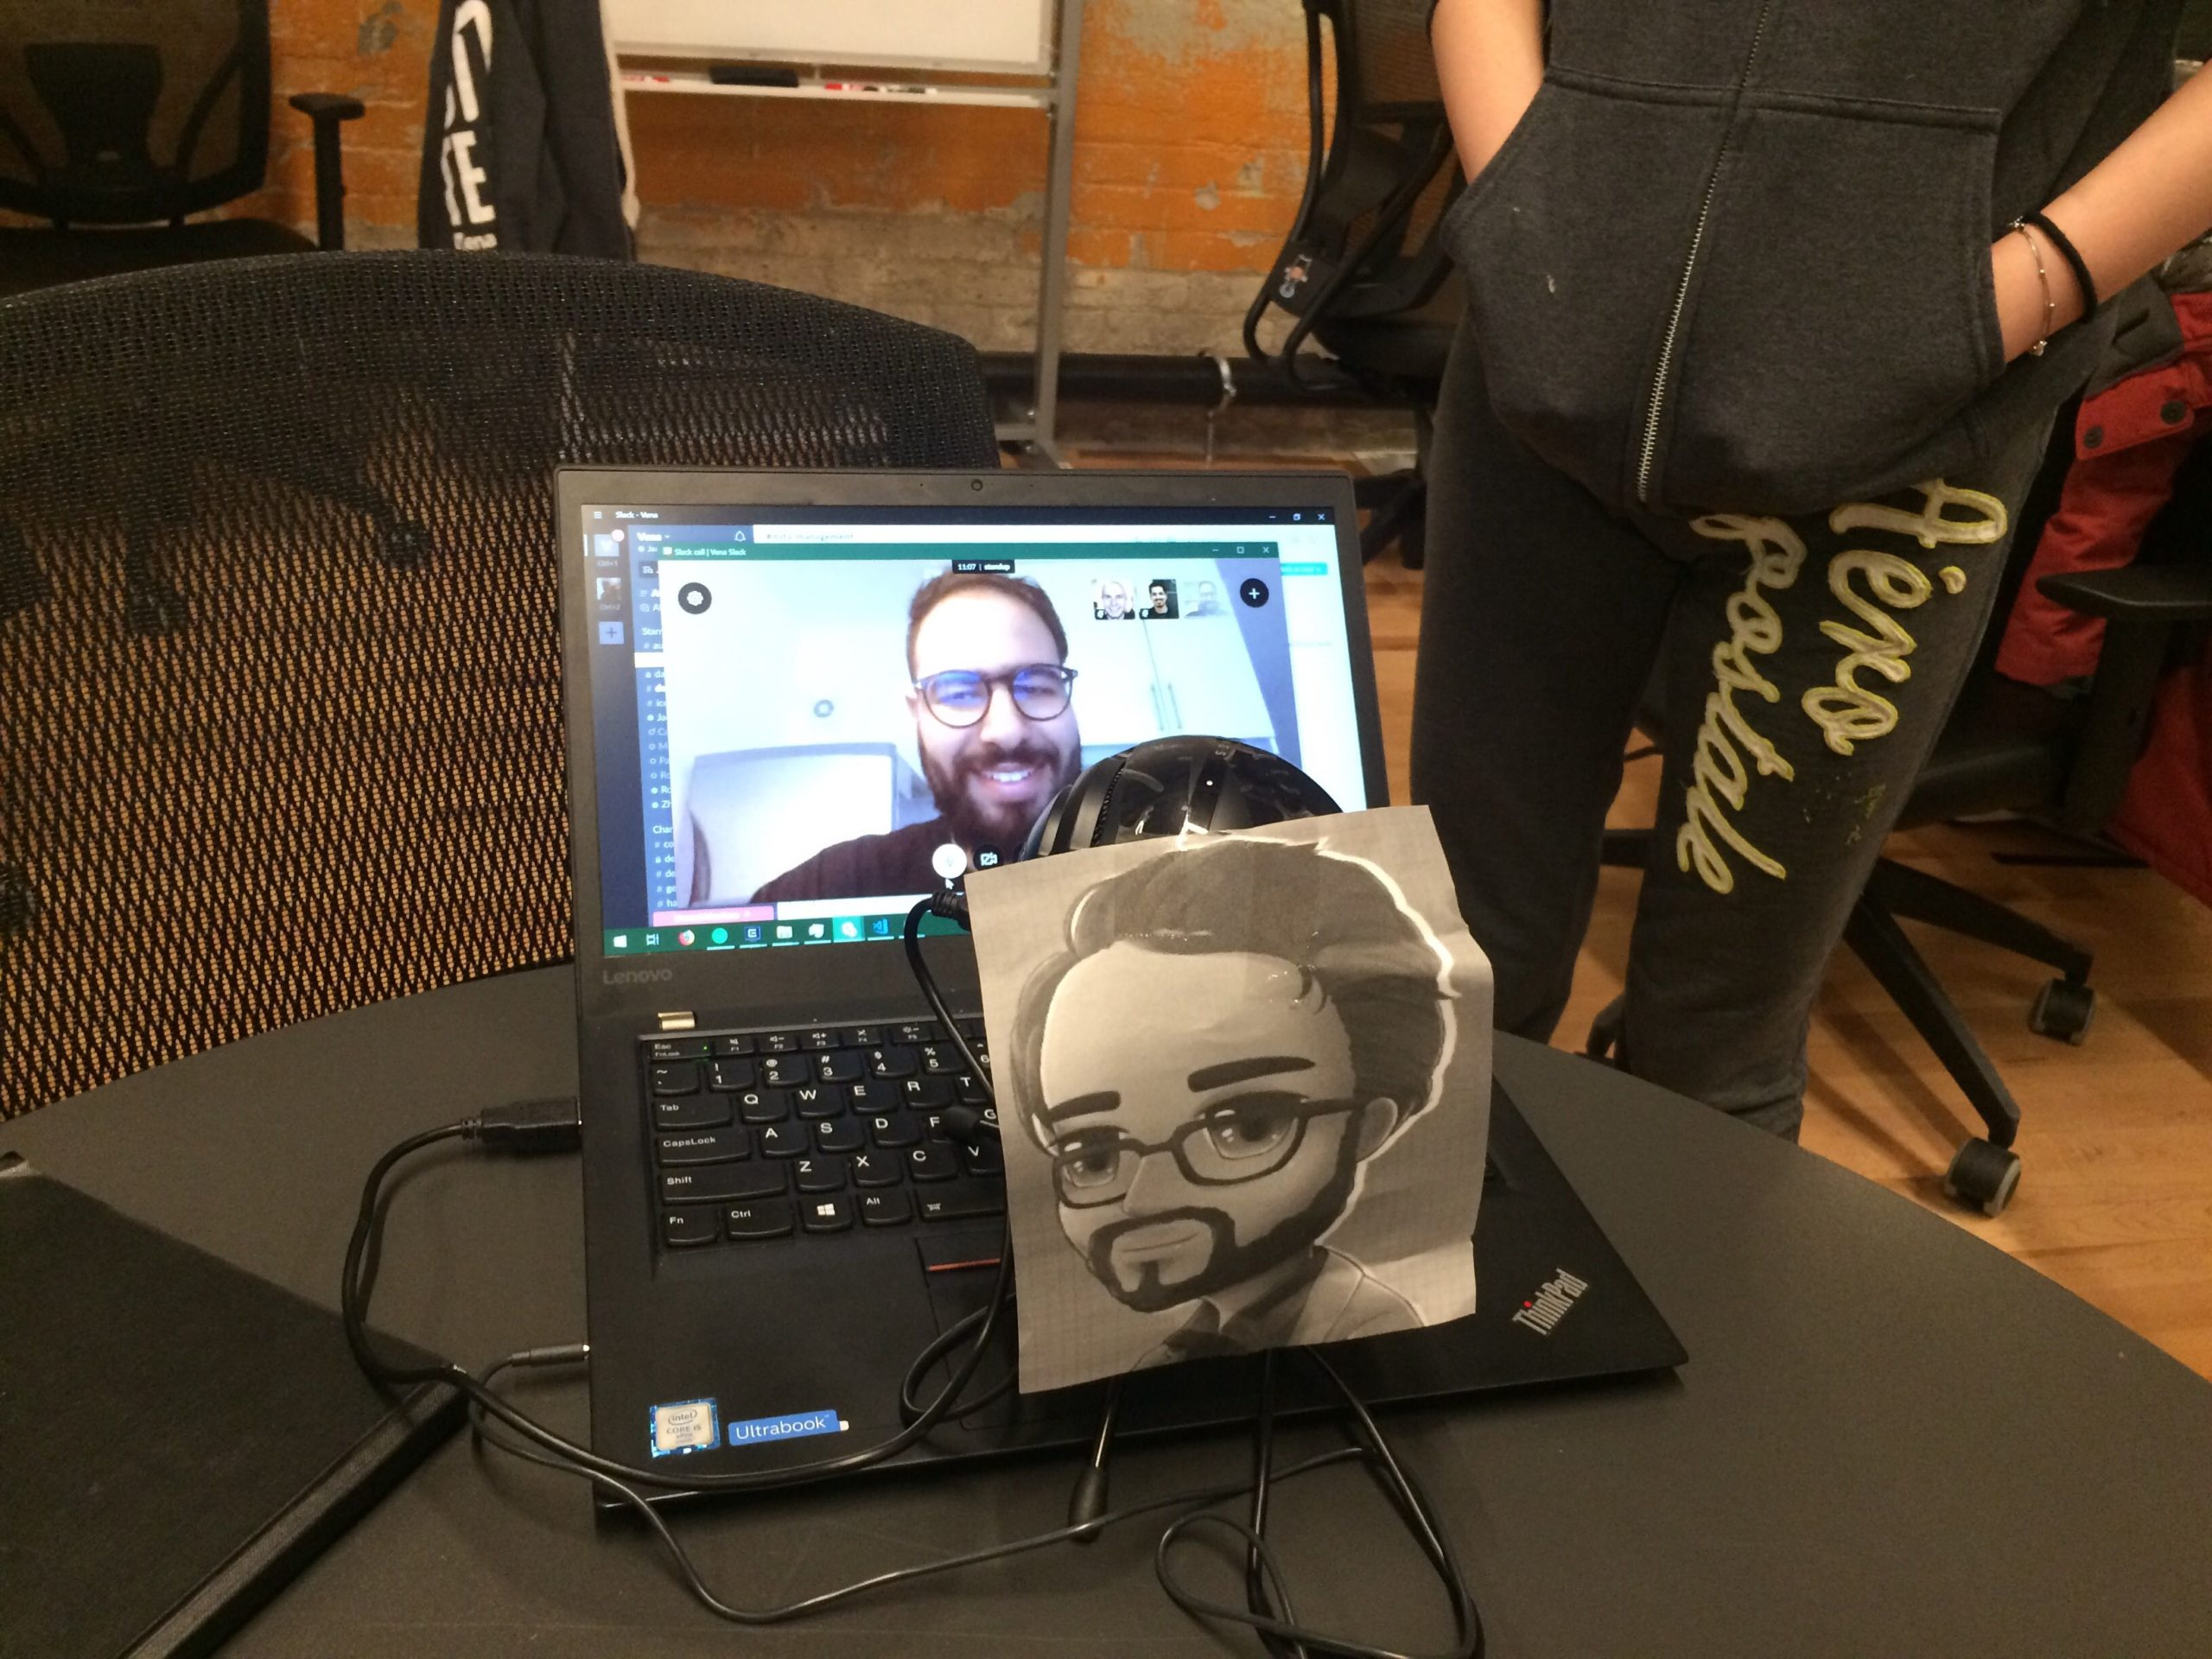 Mustafa doing a stand-up meeting remotely